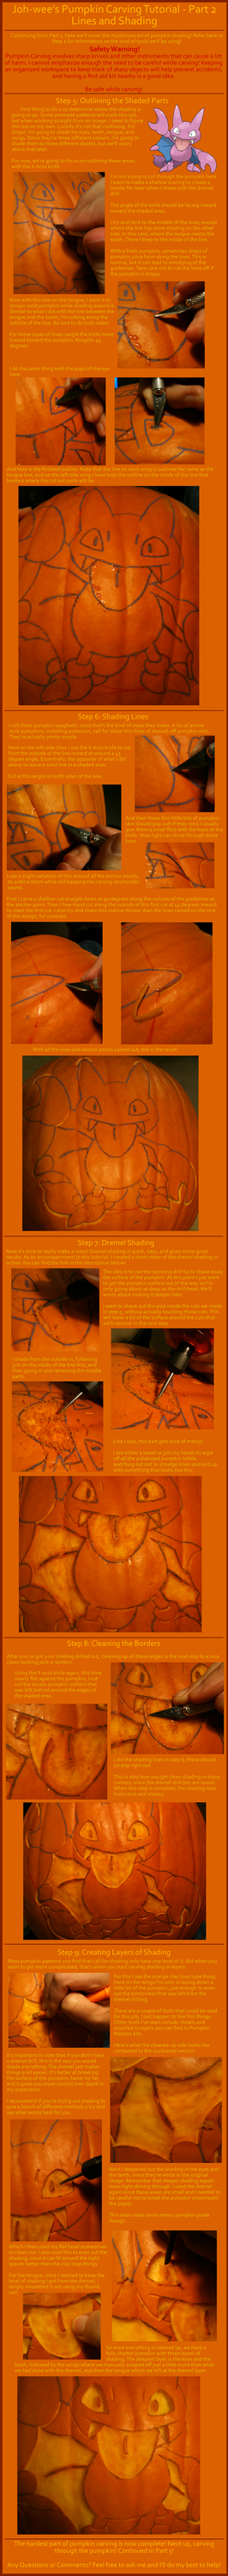 Pumpkin carving tutorial part 2 by johwee on deviantart for Pumpkin sculpting tutorial